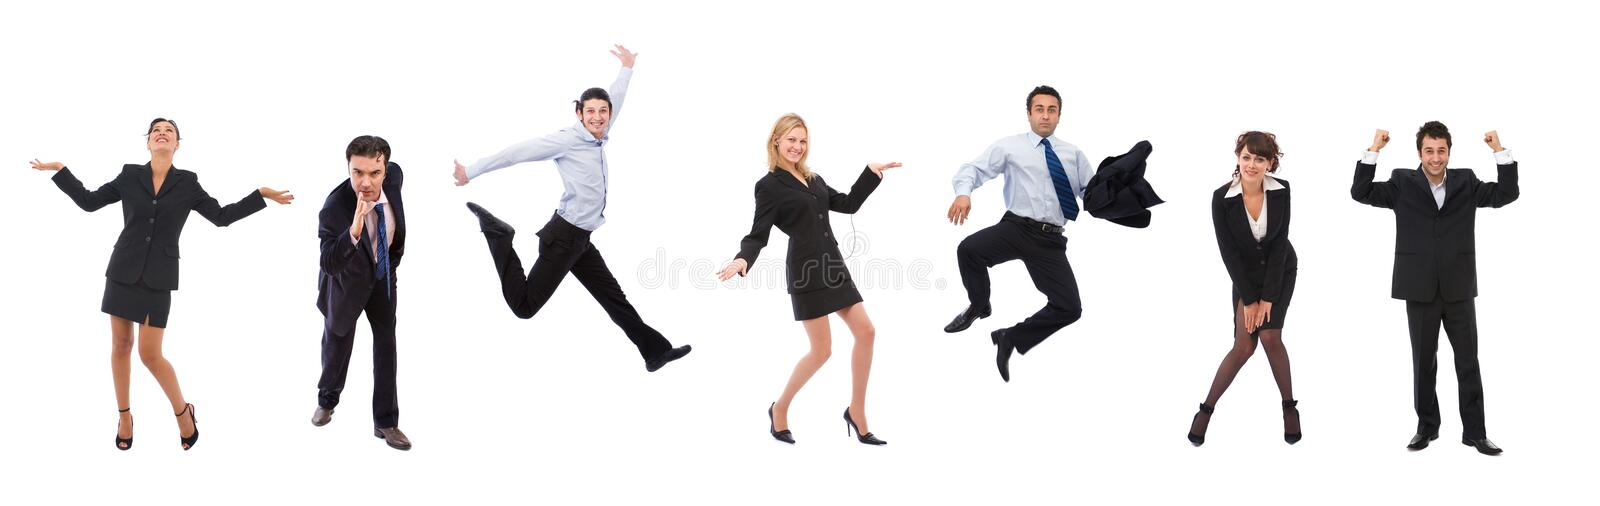 Happy business people stock photos